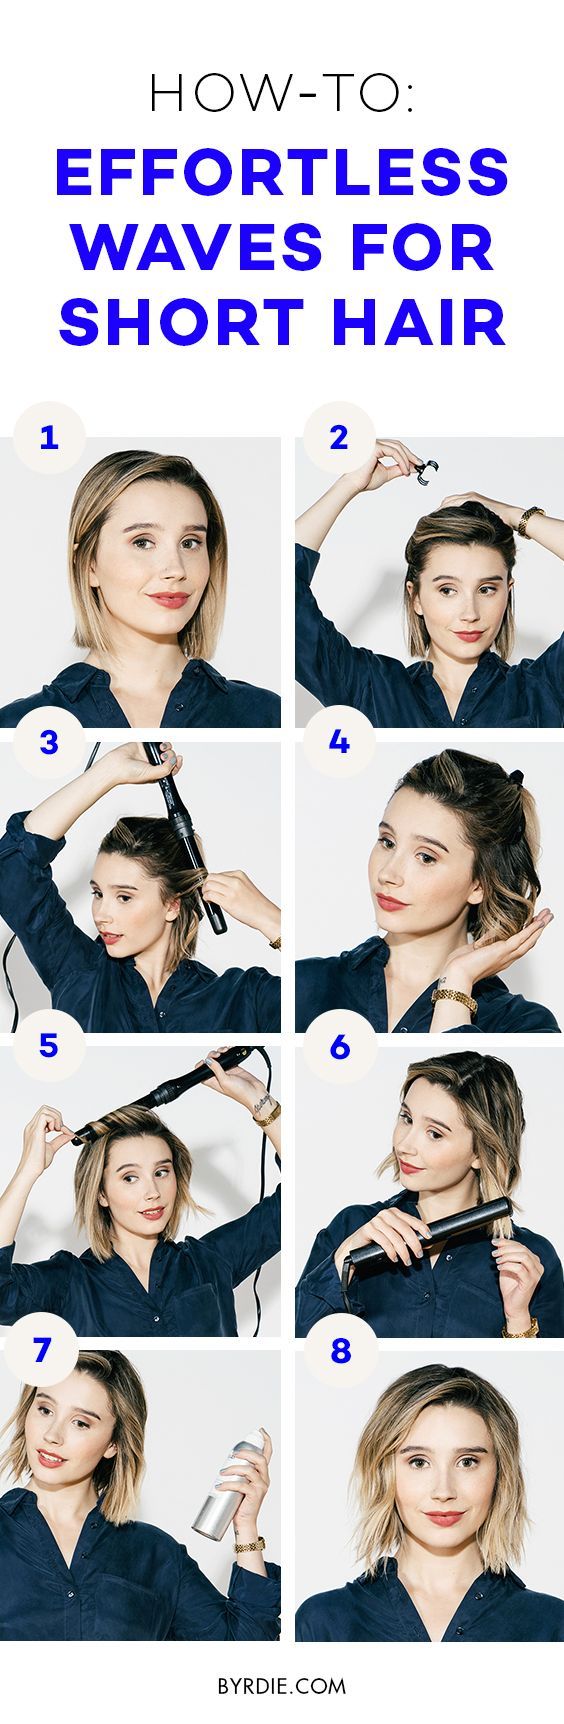 How To Get Effortless Waves On Your Short Hair Short Hair Waves How To Curl Short Hair Short Hair Tutorial